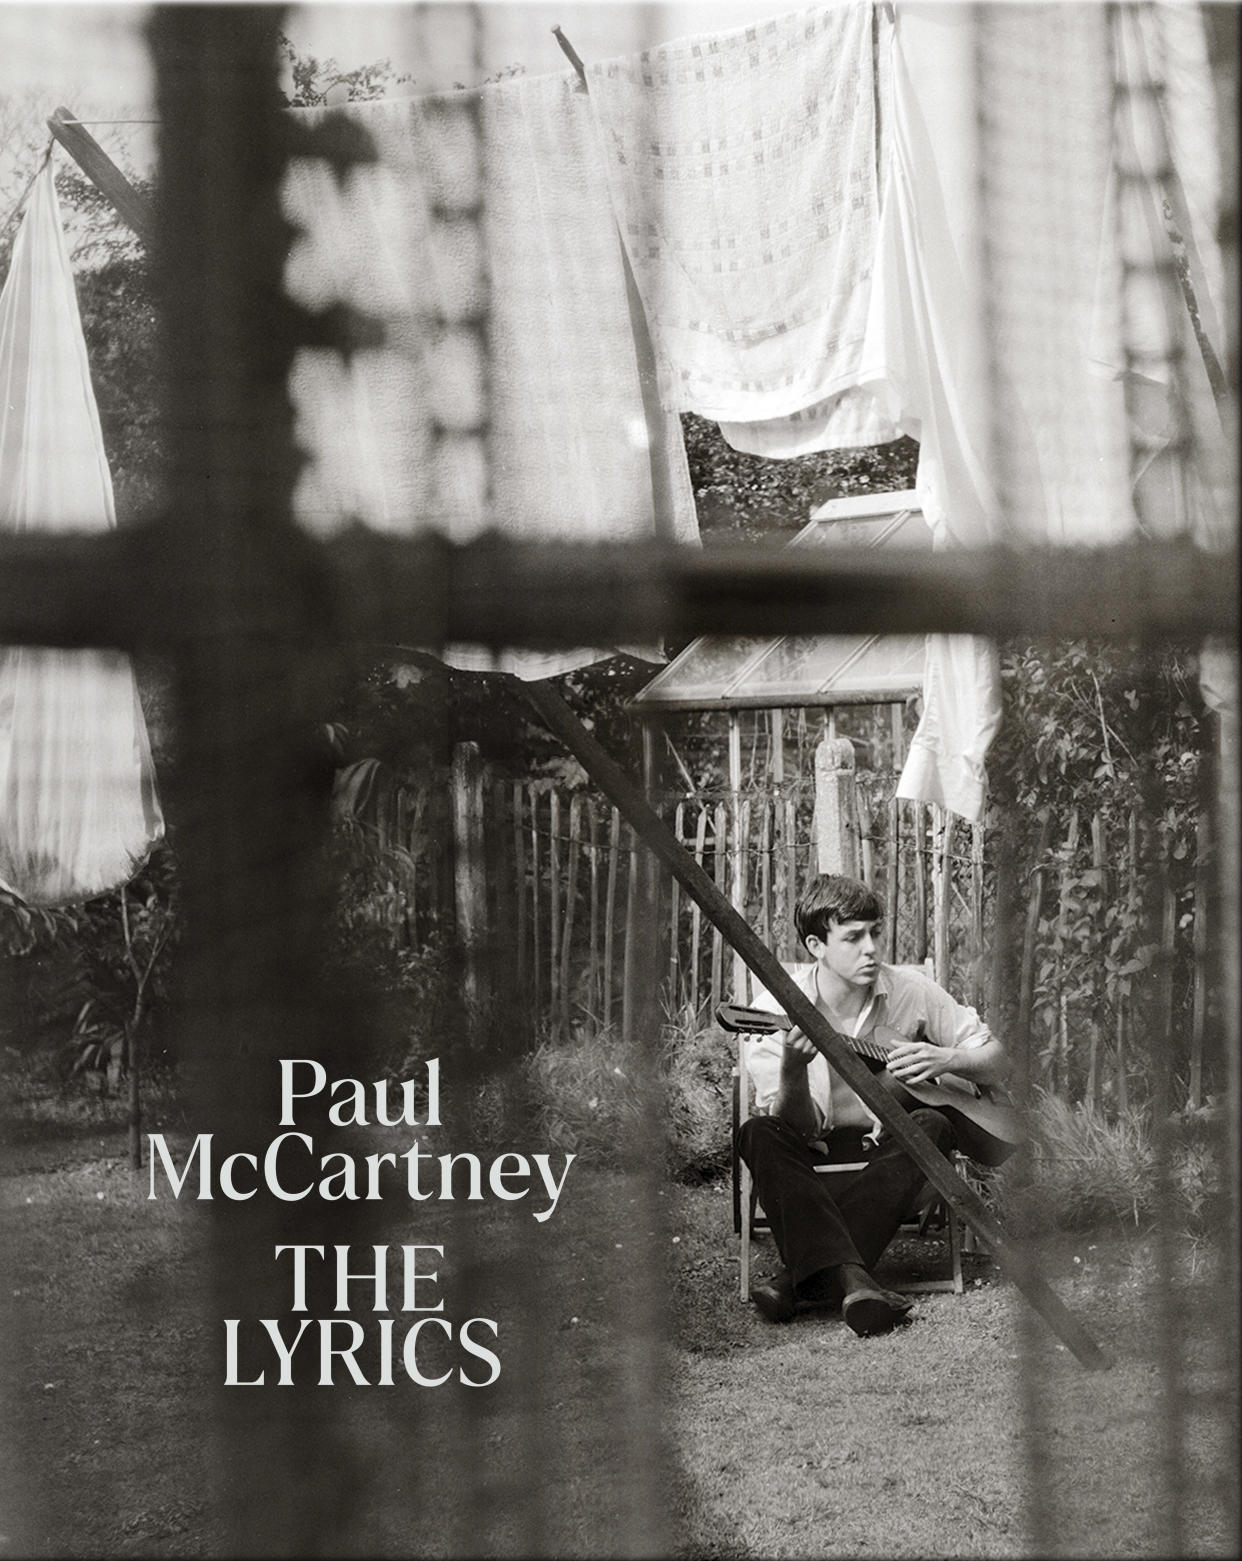 Paul McCartney The Lyrics will be published this year (Allen Lane/ Penguin Press and Liveright/ WW Norton)